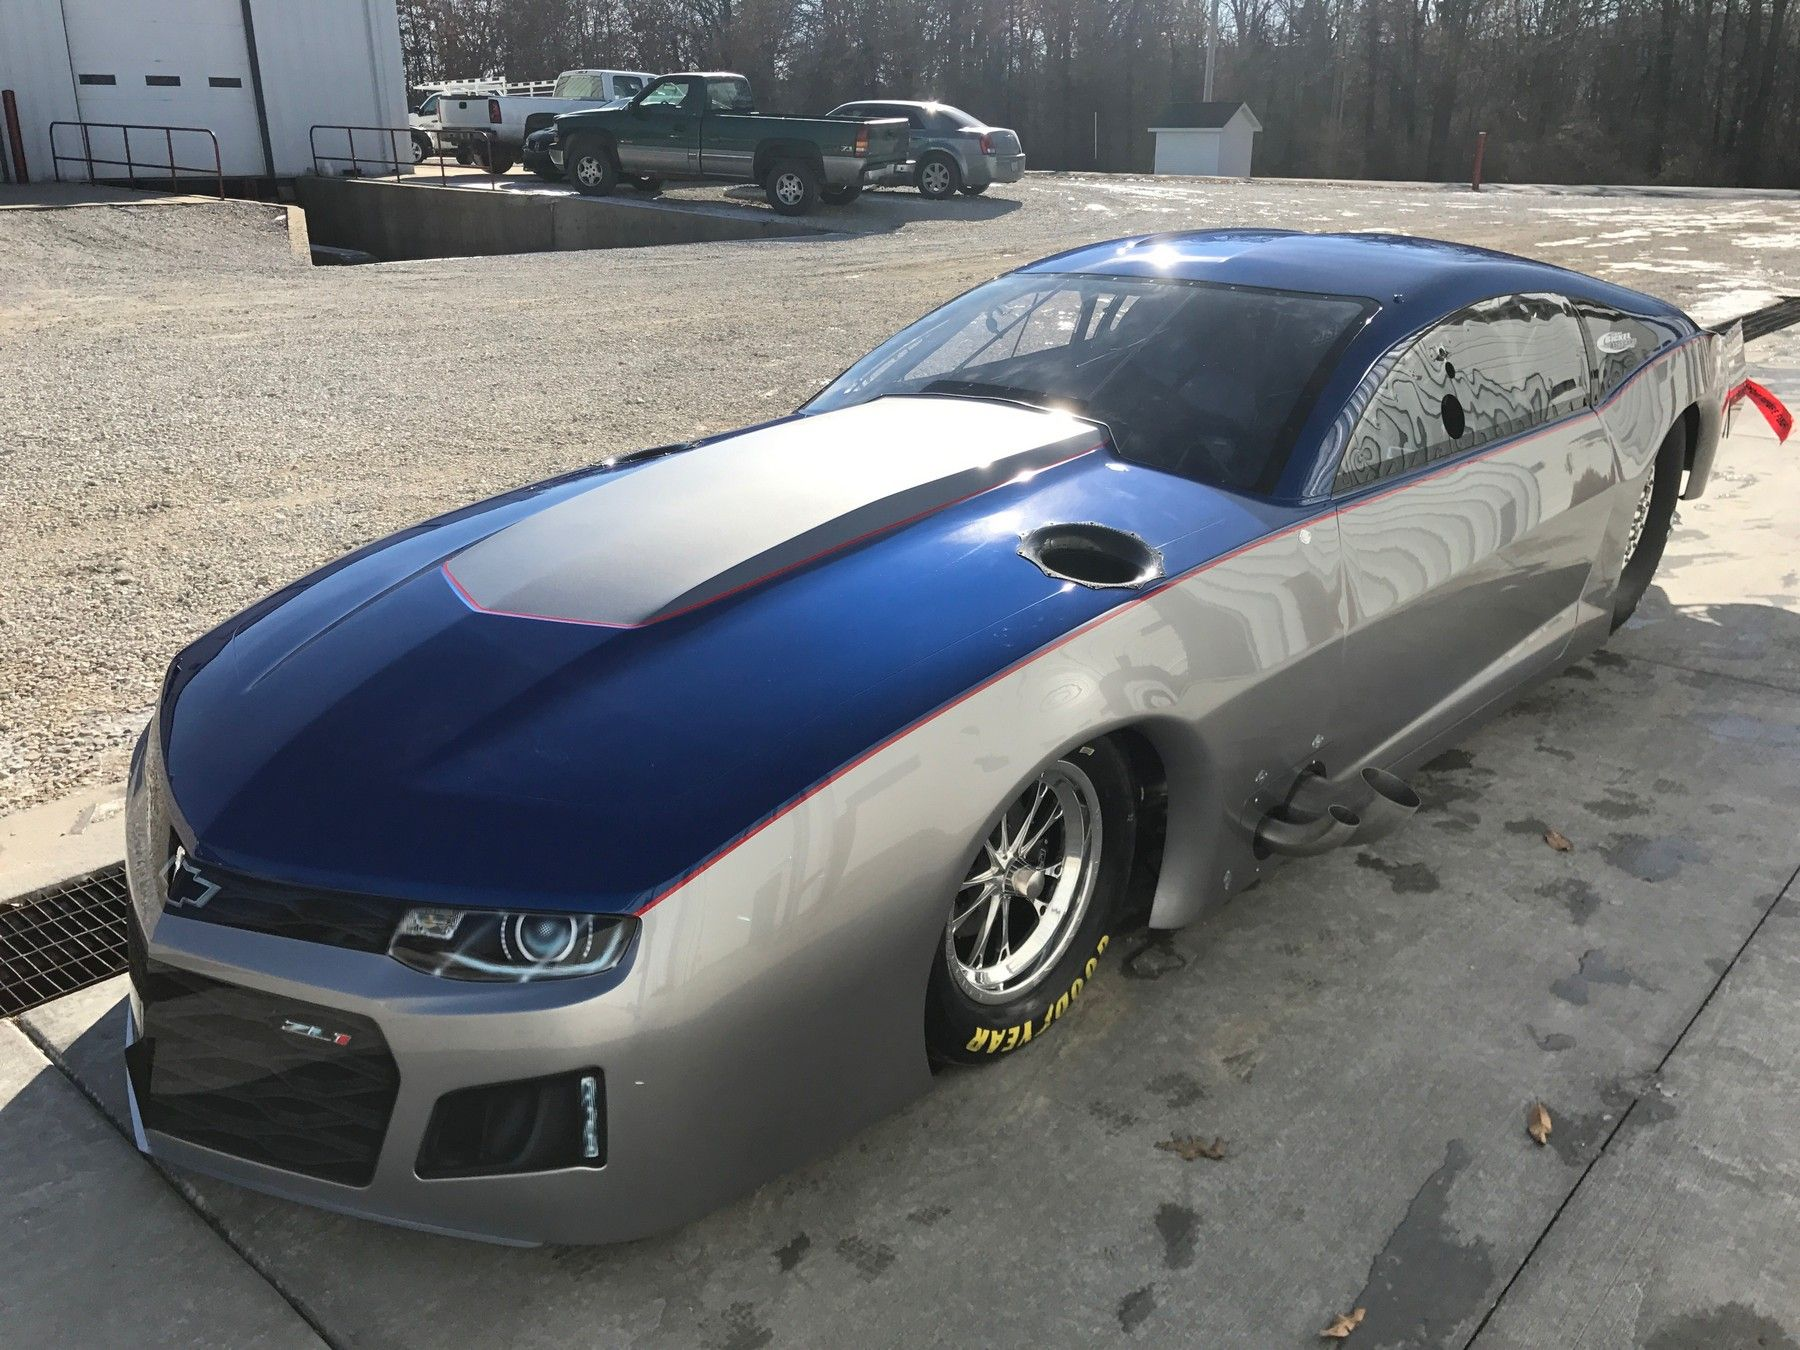 Rob Cox's new Pro Modified Camaro built following the Jerry